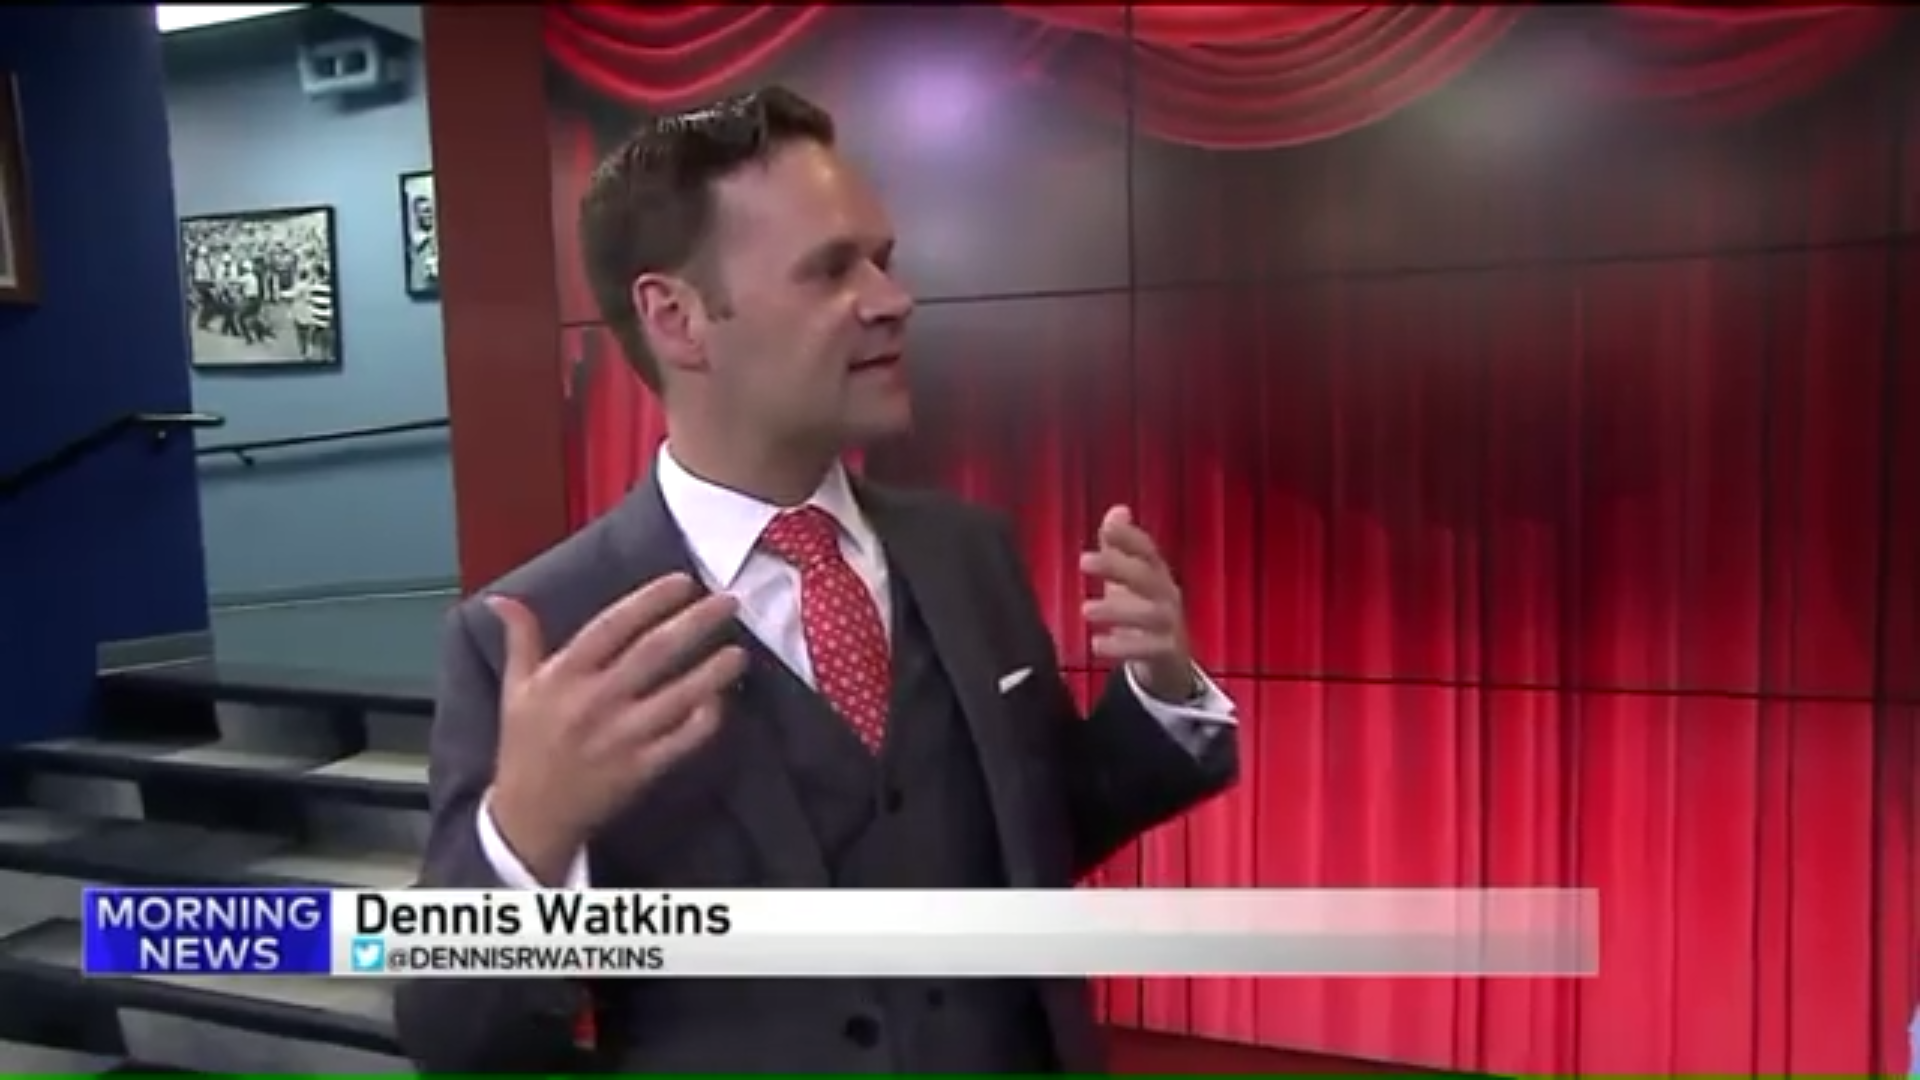 Click the image to watch Dennis Watkins read minds on WGN